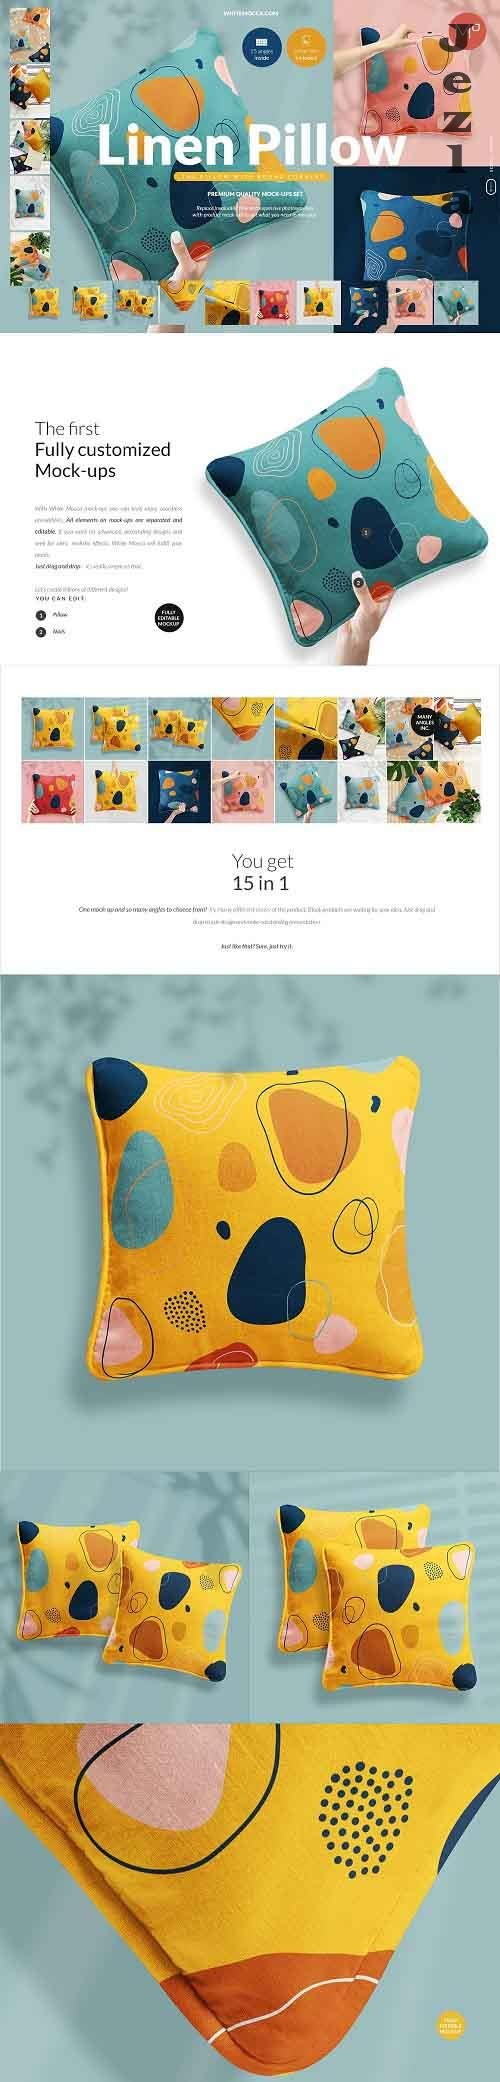 CreativeMarket - Linen Pillow 15x Mock ups Set 5352824